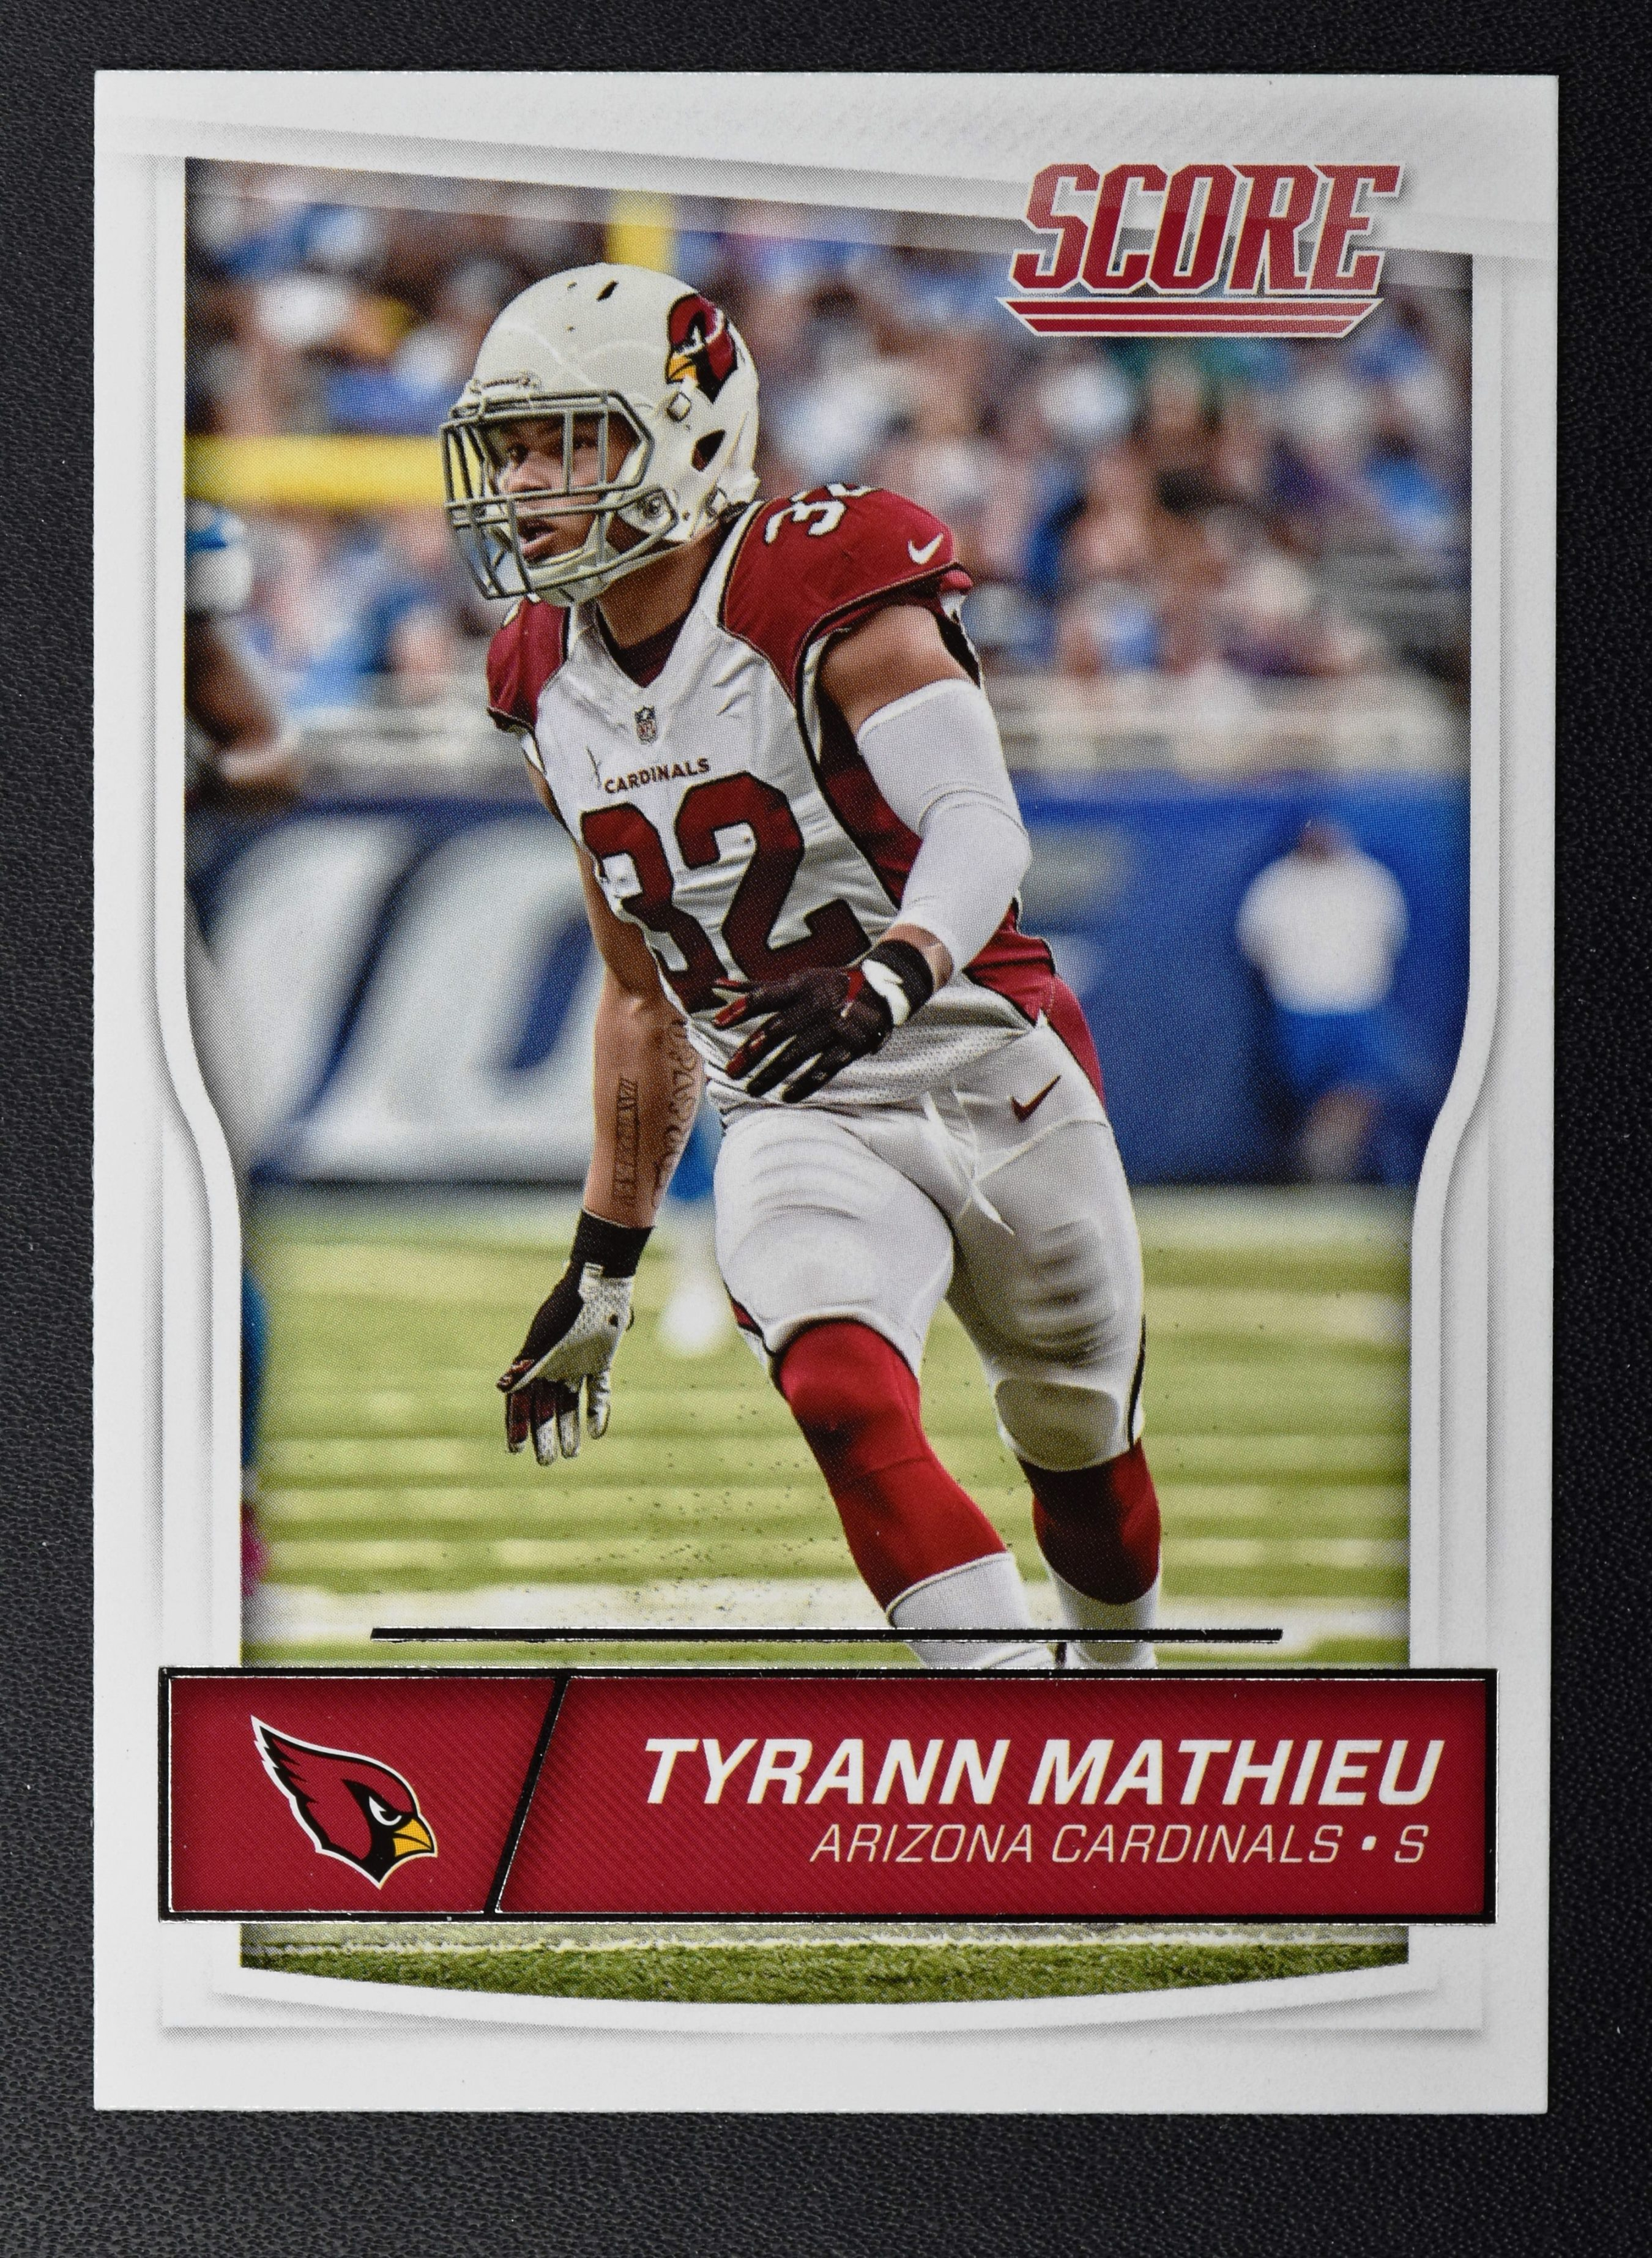 2016 Score 10 Tyrann Mathieu NM MT